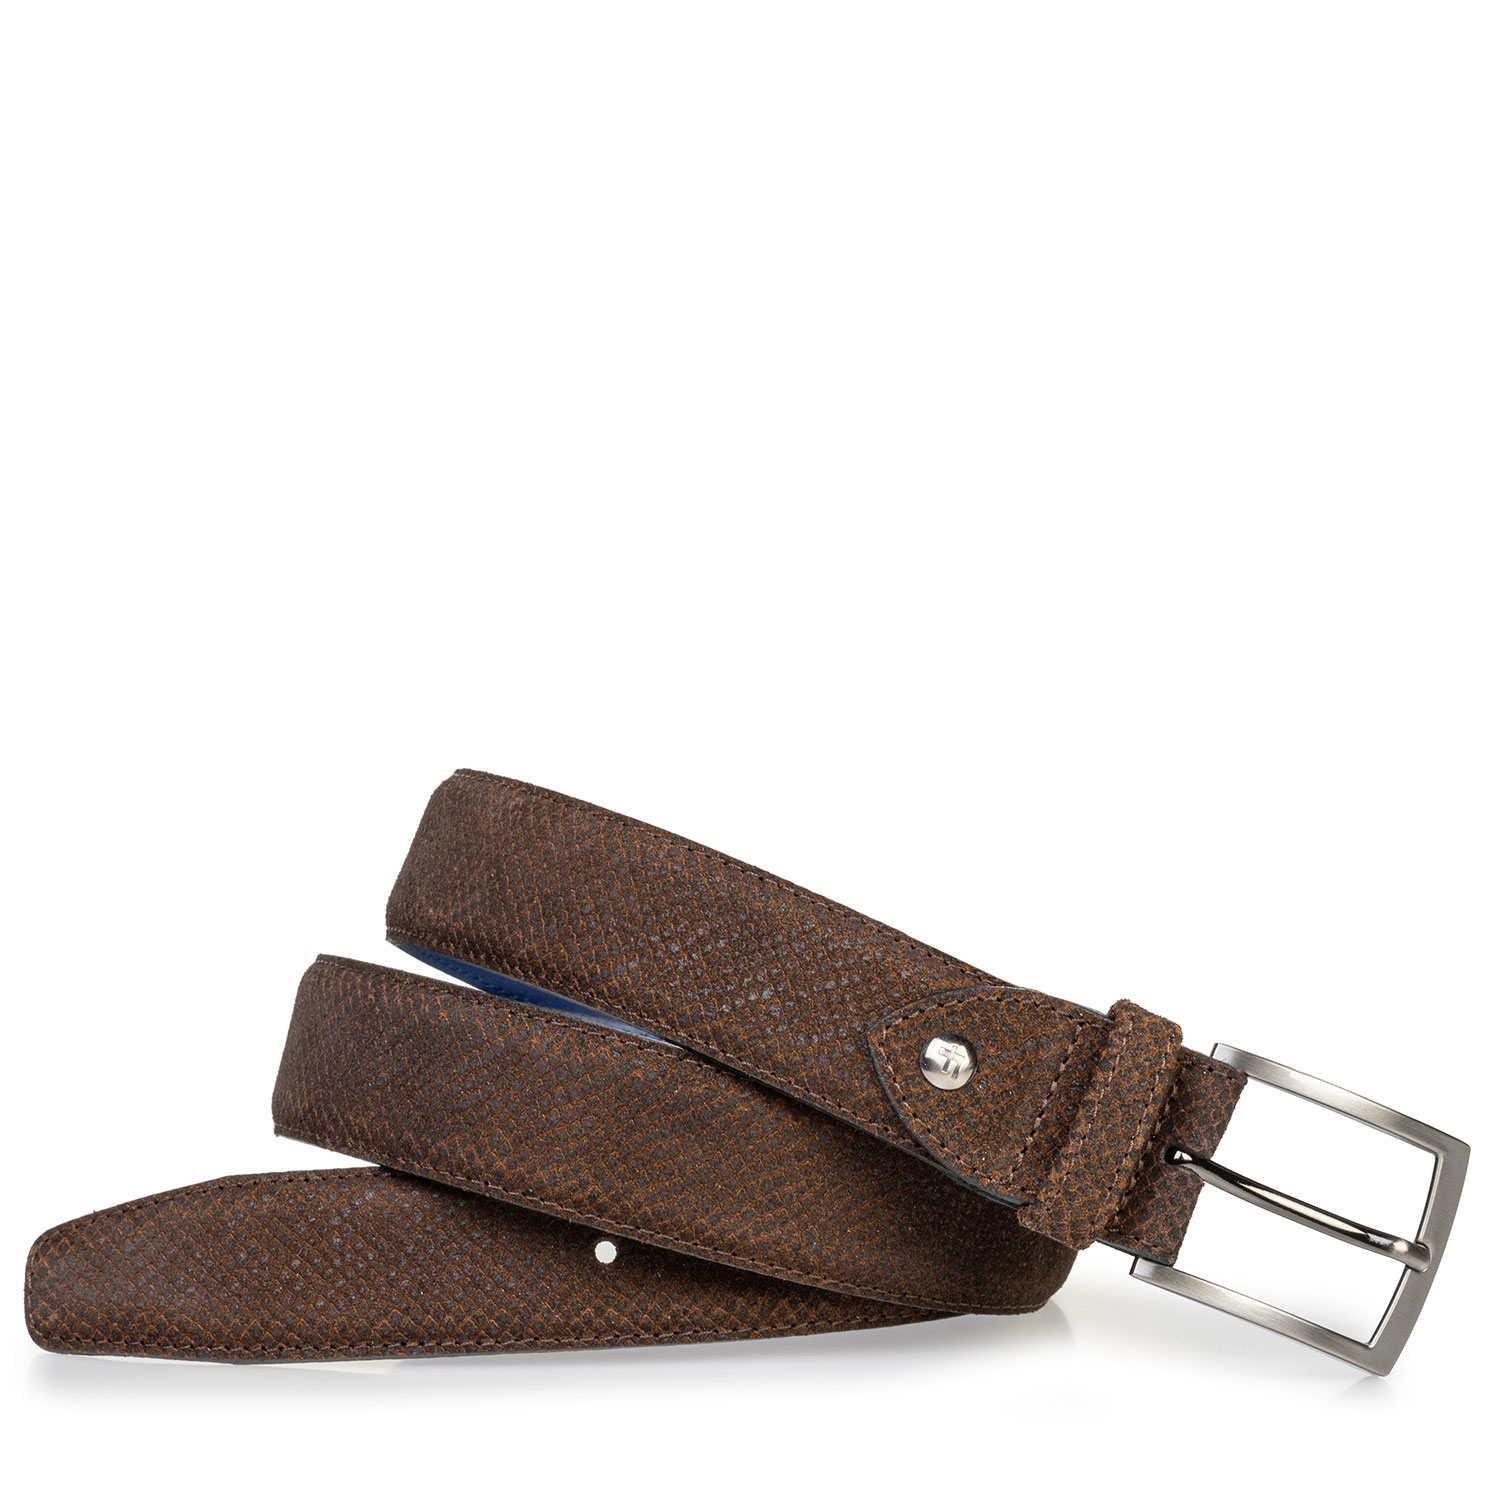 75203/21 - Suede leather belt with print cognac